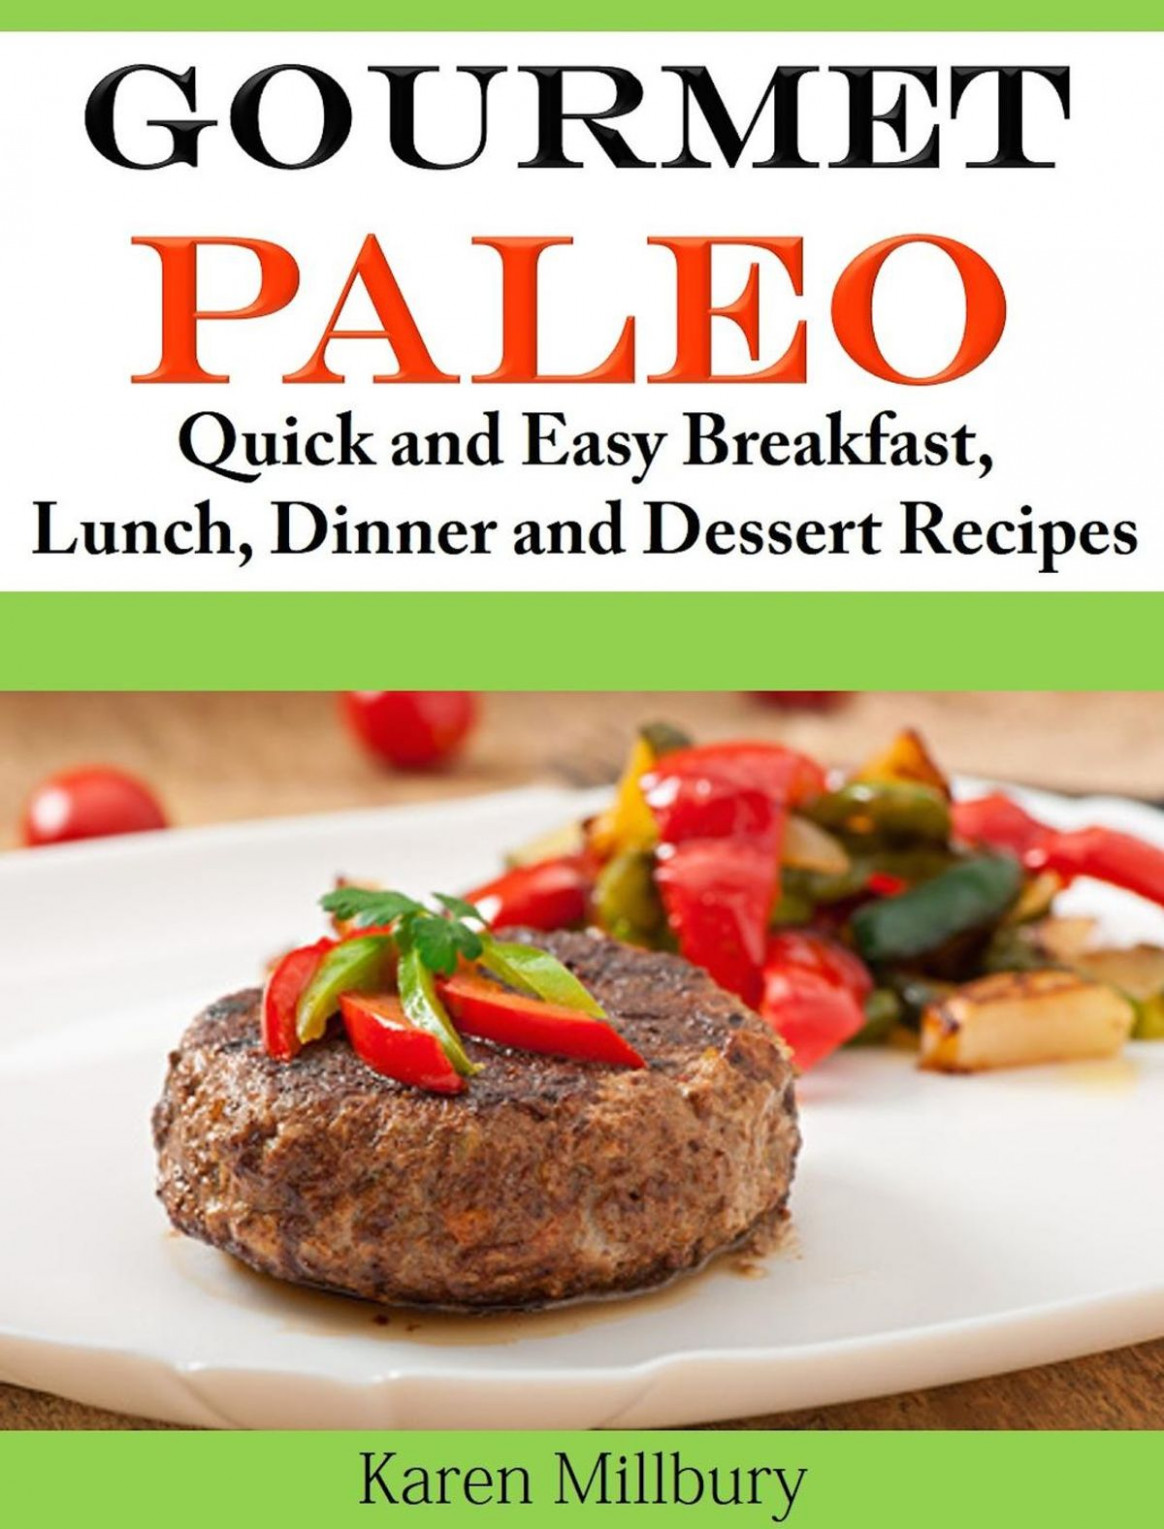 Gourmet Paleo Quick and Easy Breakfast, Lunch, Dinner and Dessert Recipes  ebook by Karen Millbury - Rakuten Kobo - paleo recipes dinner quick